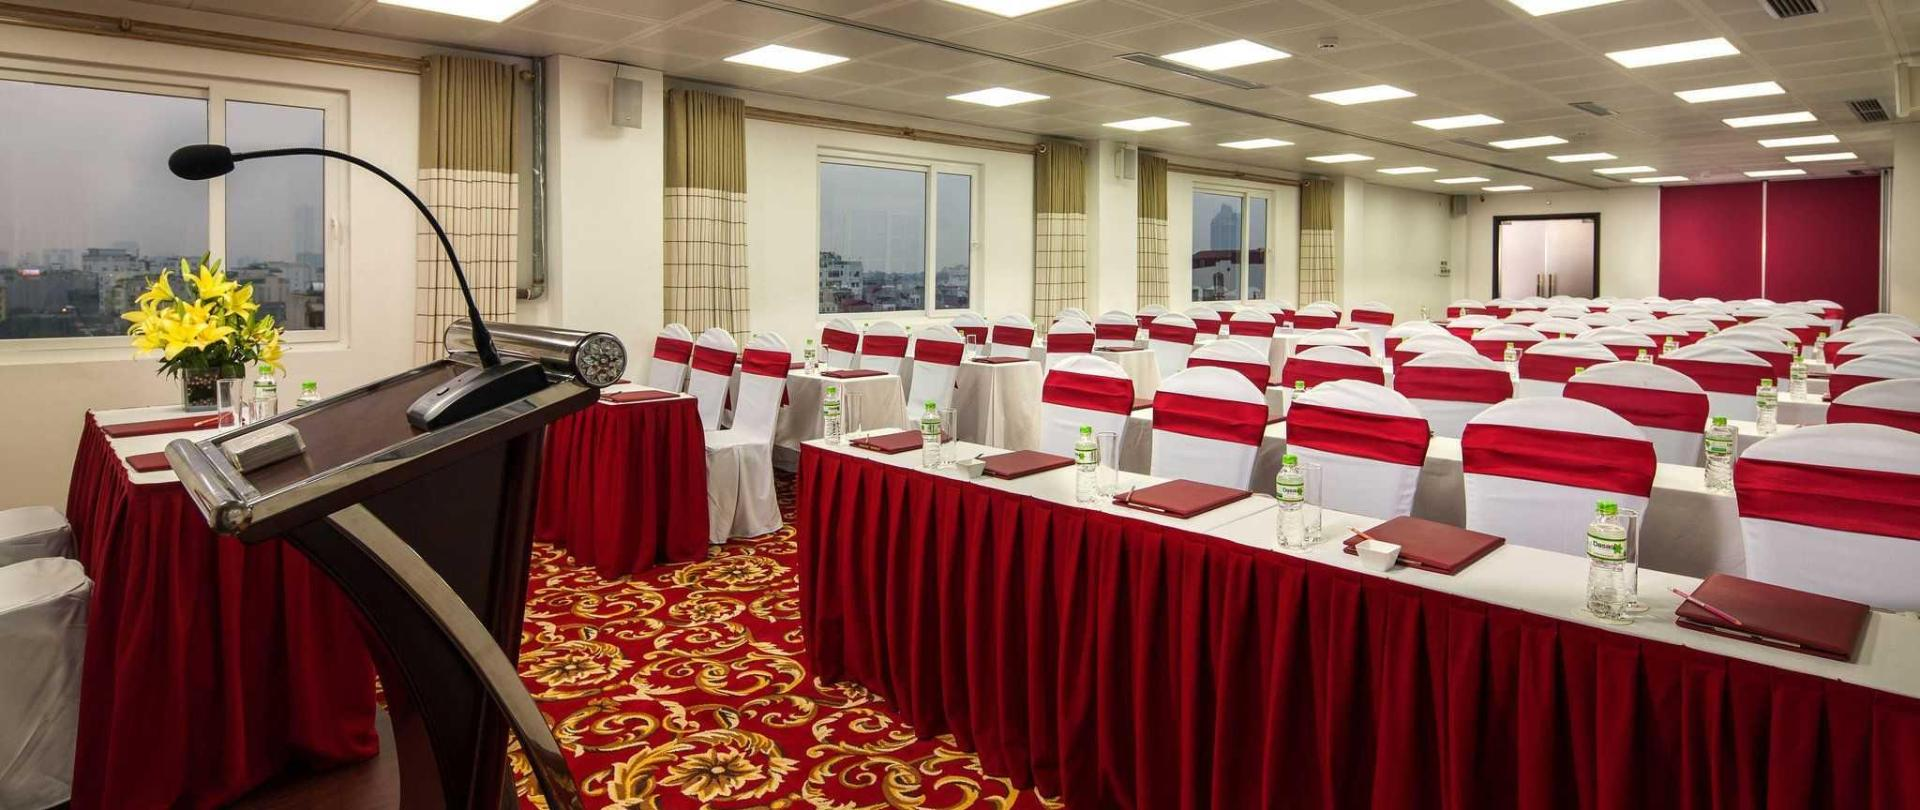 meeting-room-conference.jpg